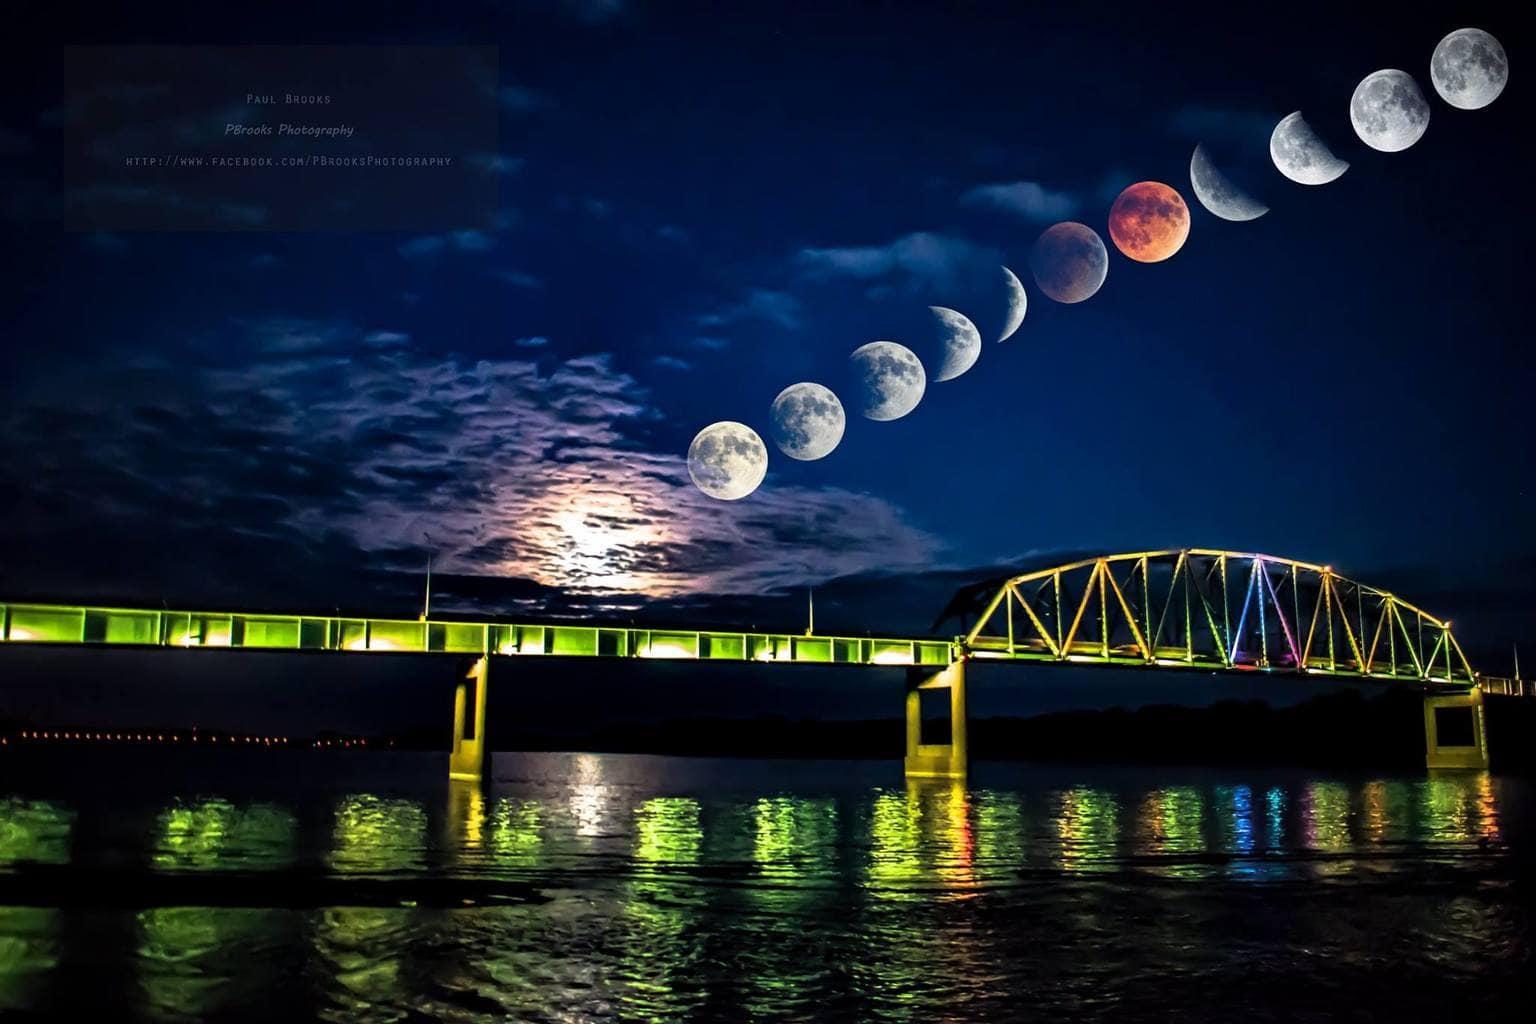 My composite from Muscatine,Iowa. Moon is about 5% bigger by scale than actuality, to show details.